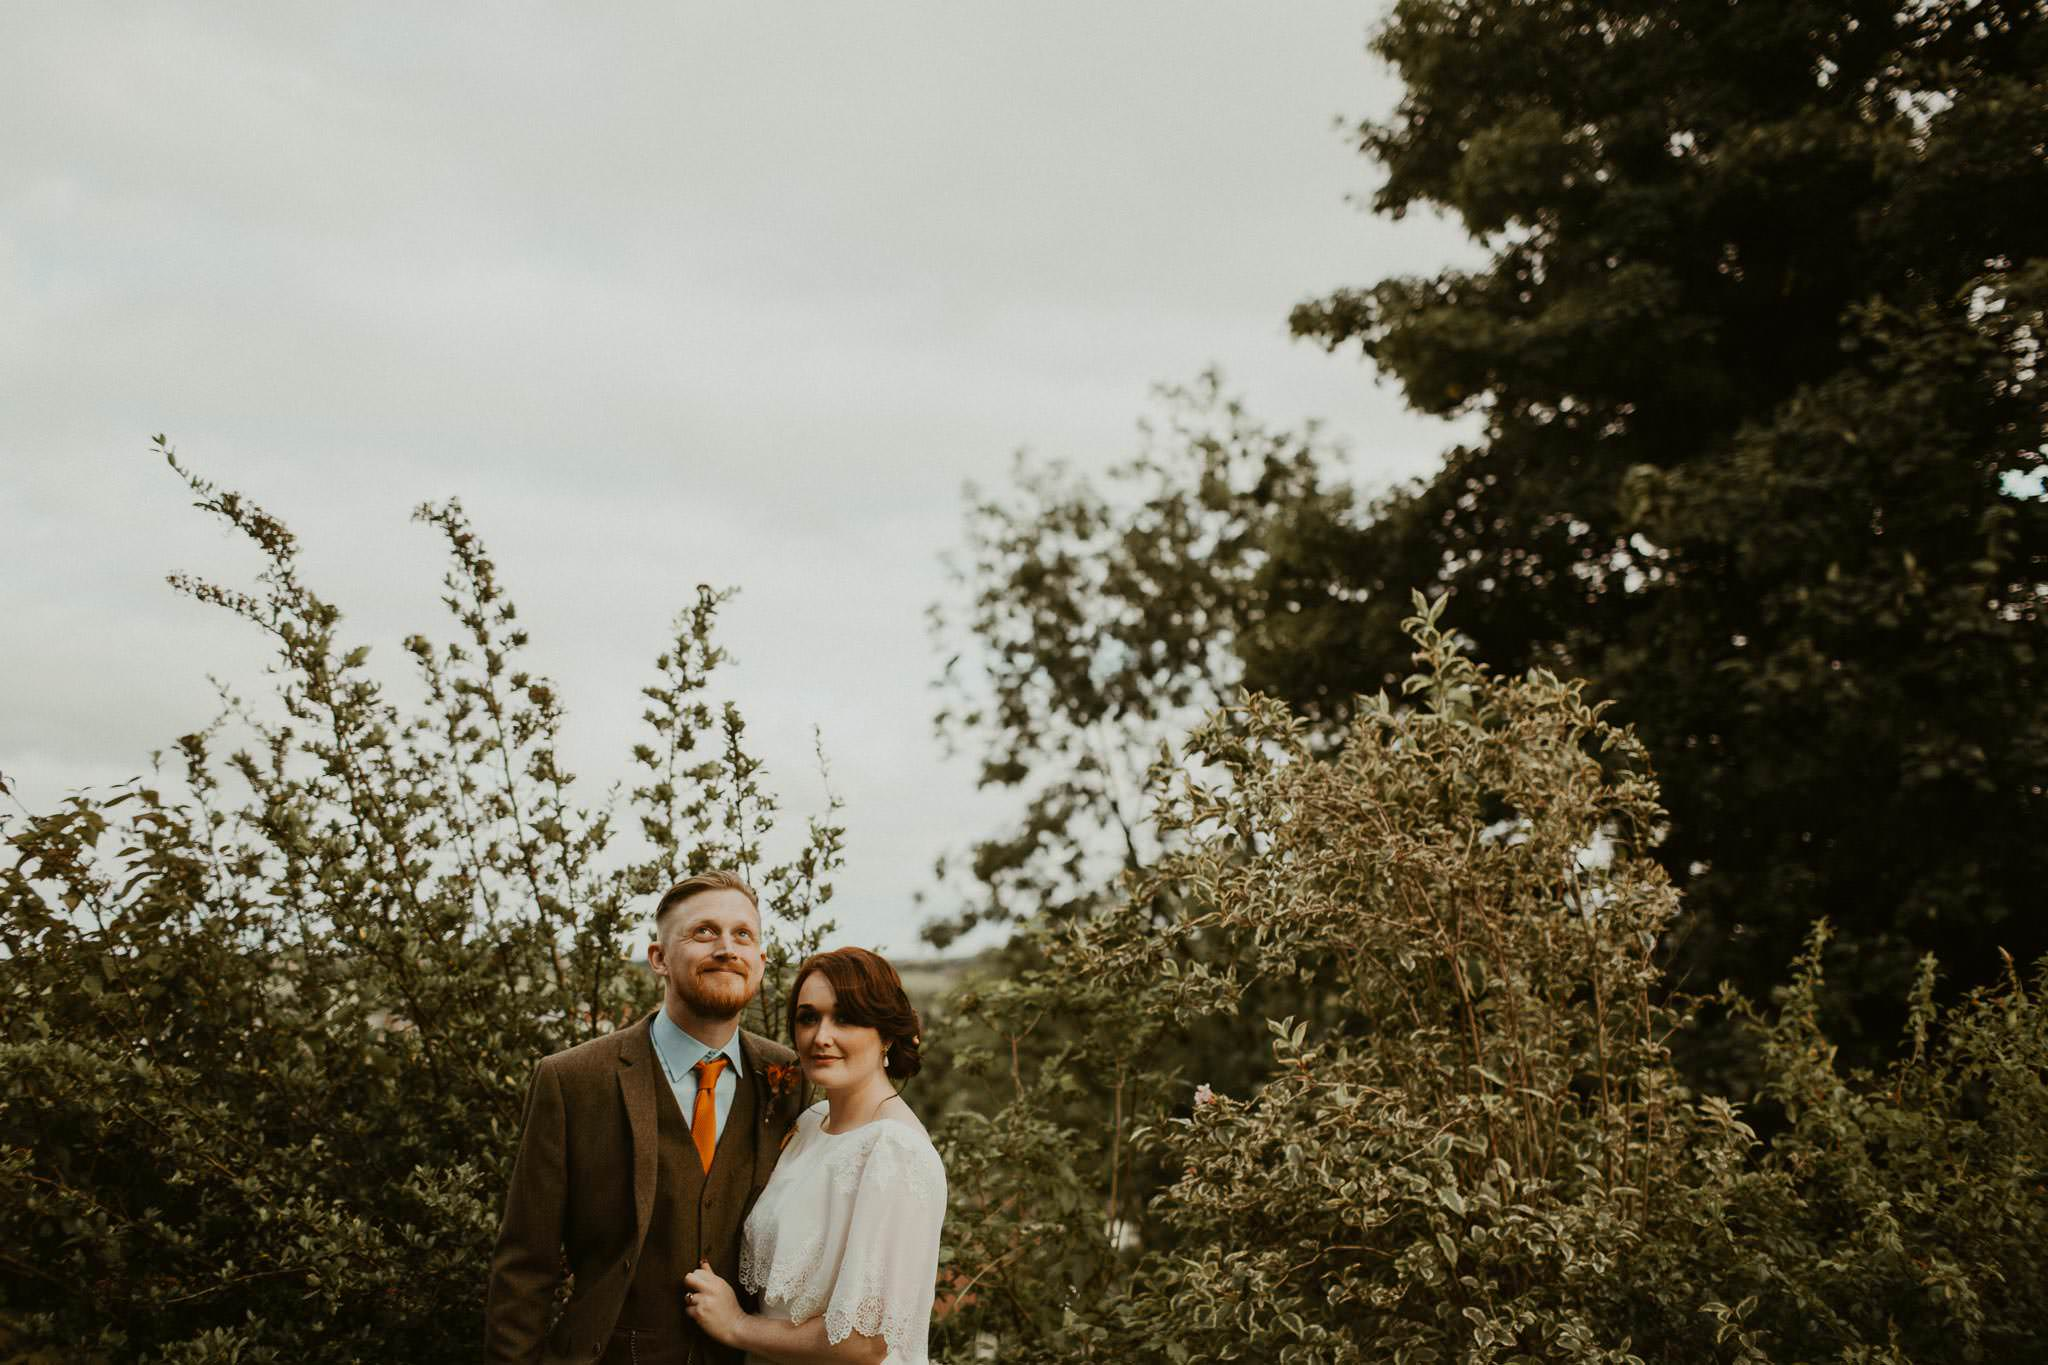 scottish-wedding-photographer-114